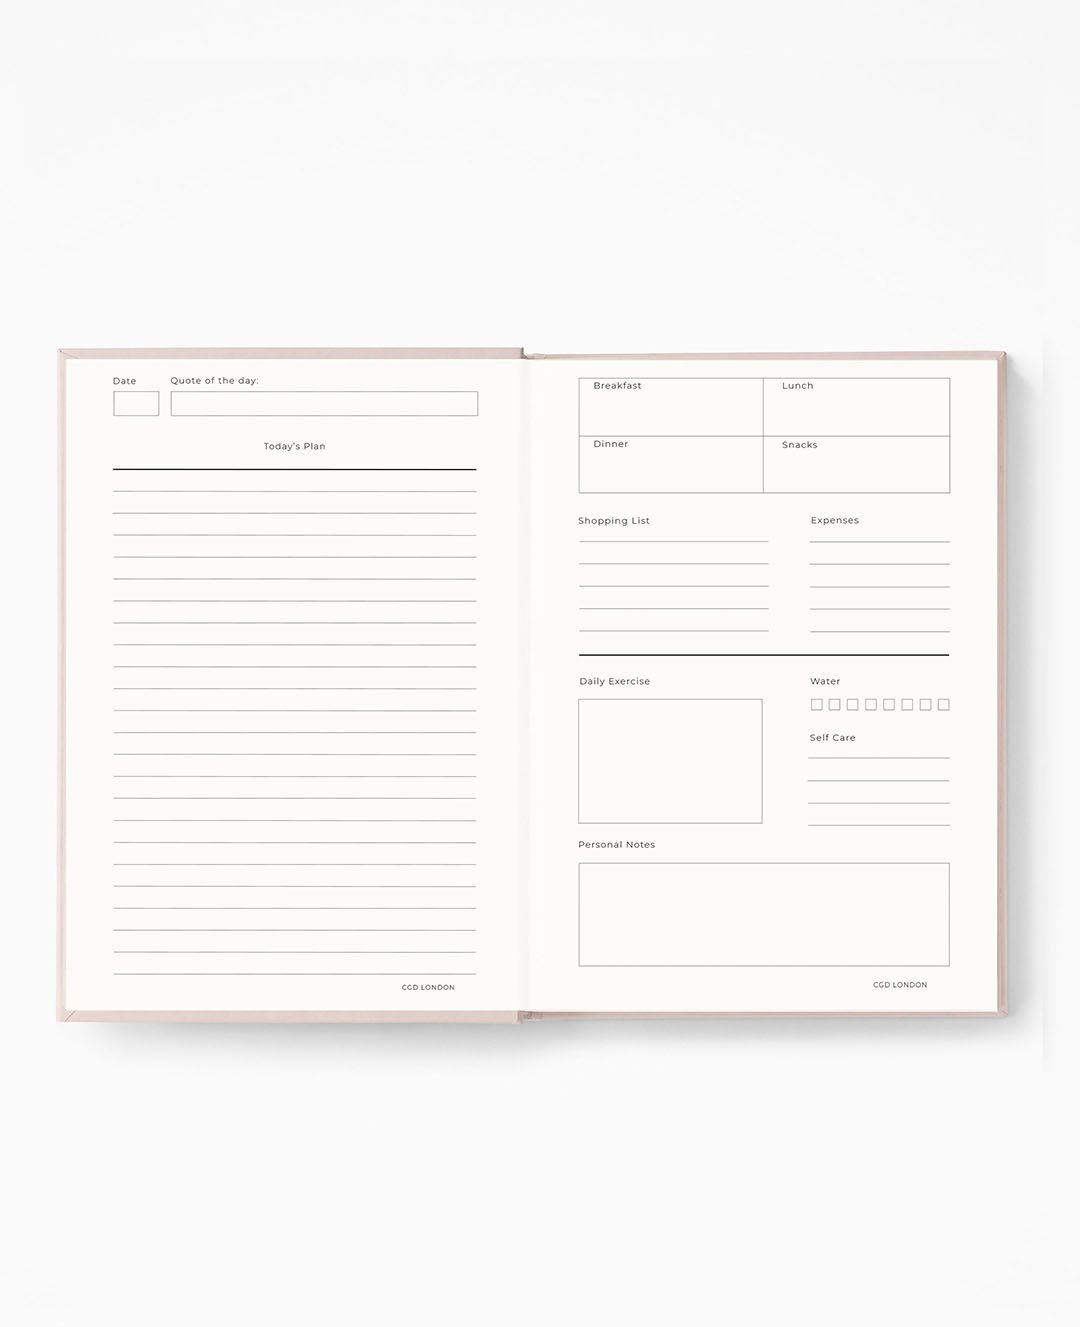 Gold-Dust Daily Planner - CGD LONDON